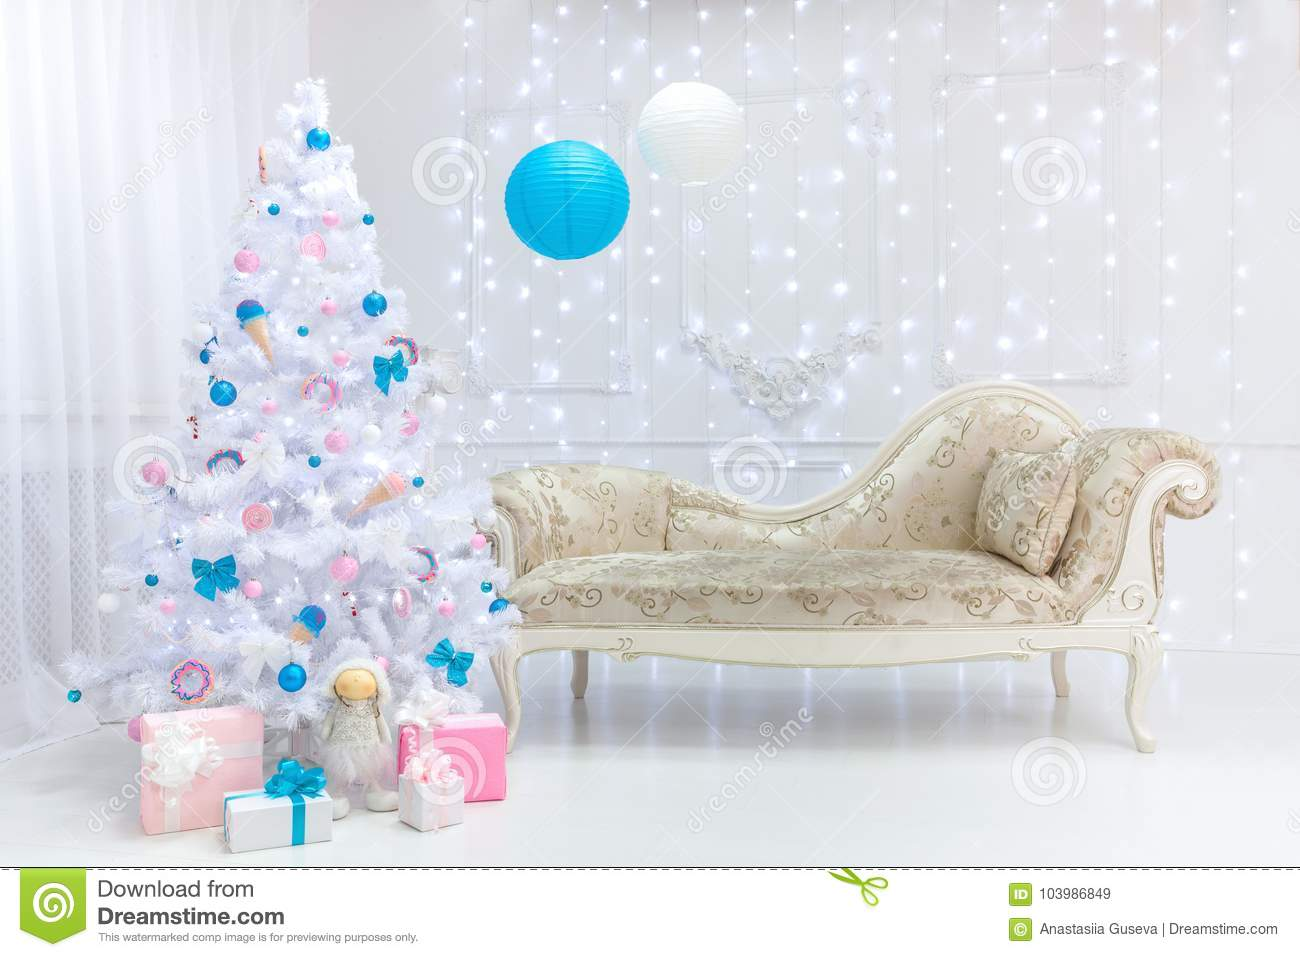 Classic Christmas Light Interior In White Pink And Blue Tones With A Couch Tree And Molding Stock Image Image Of House Classic 103986849